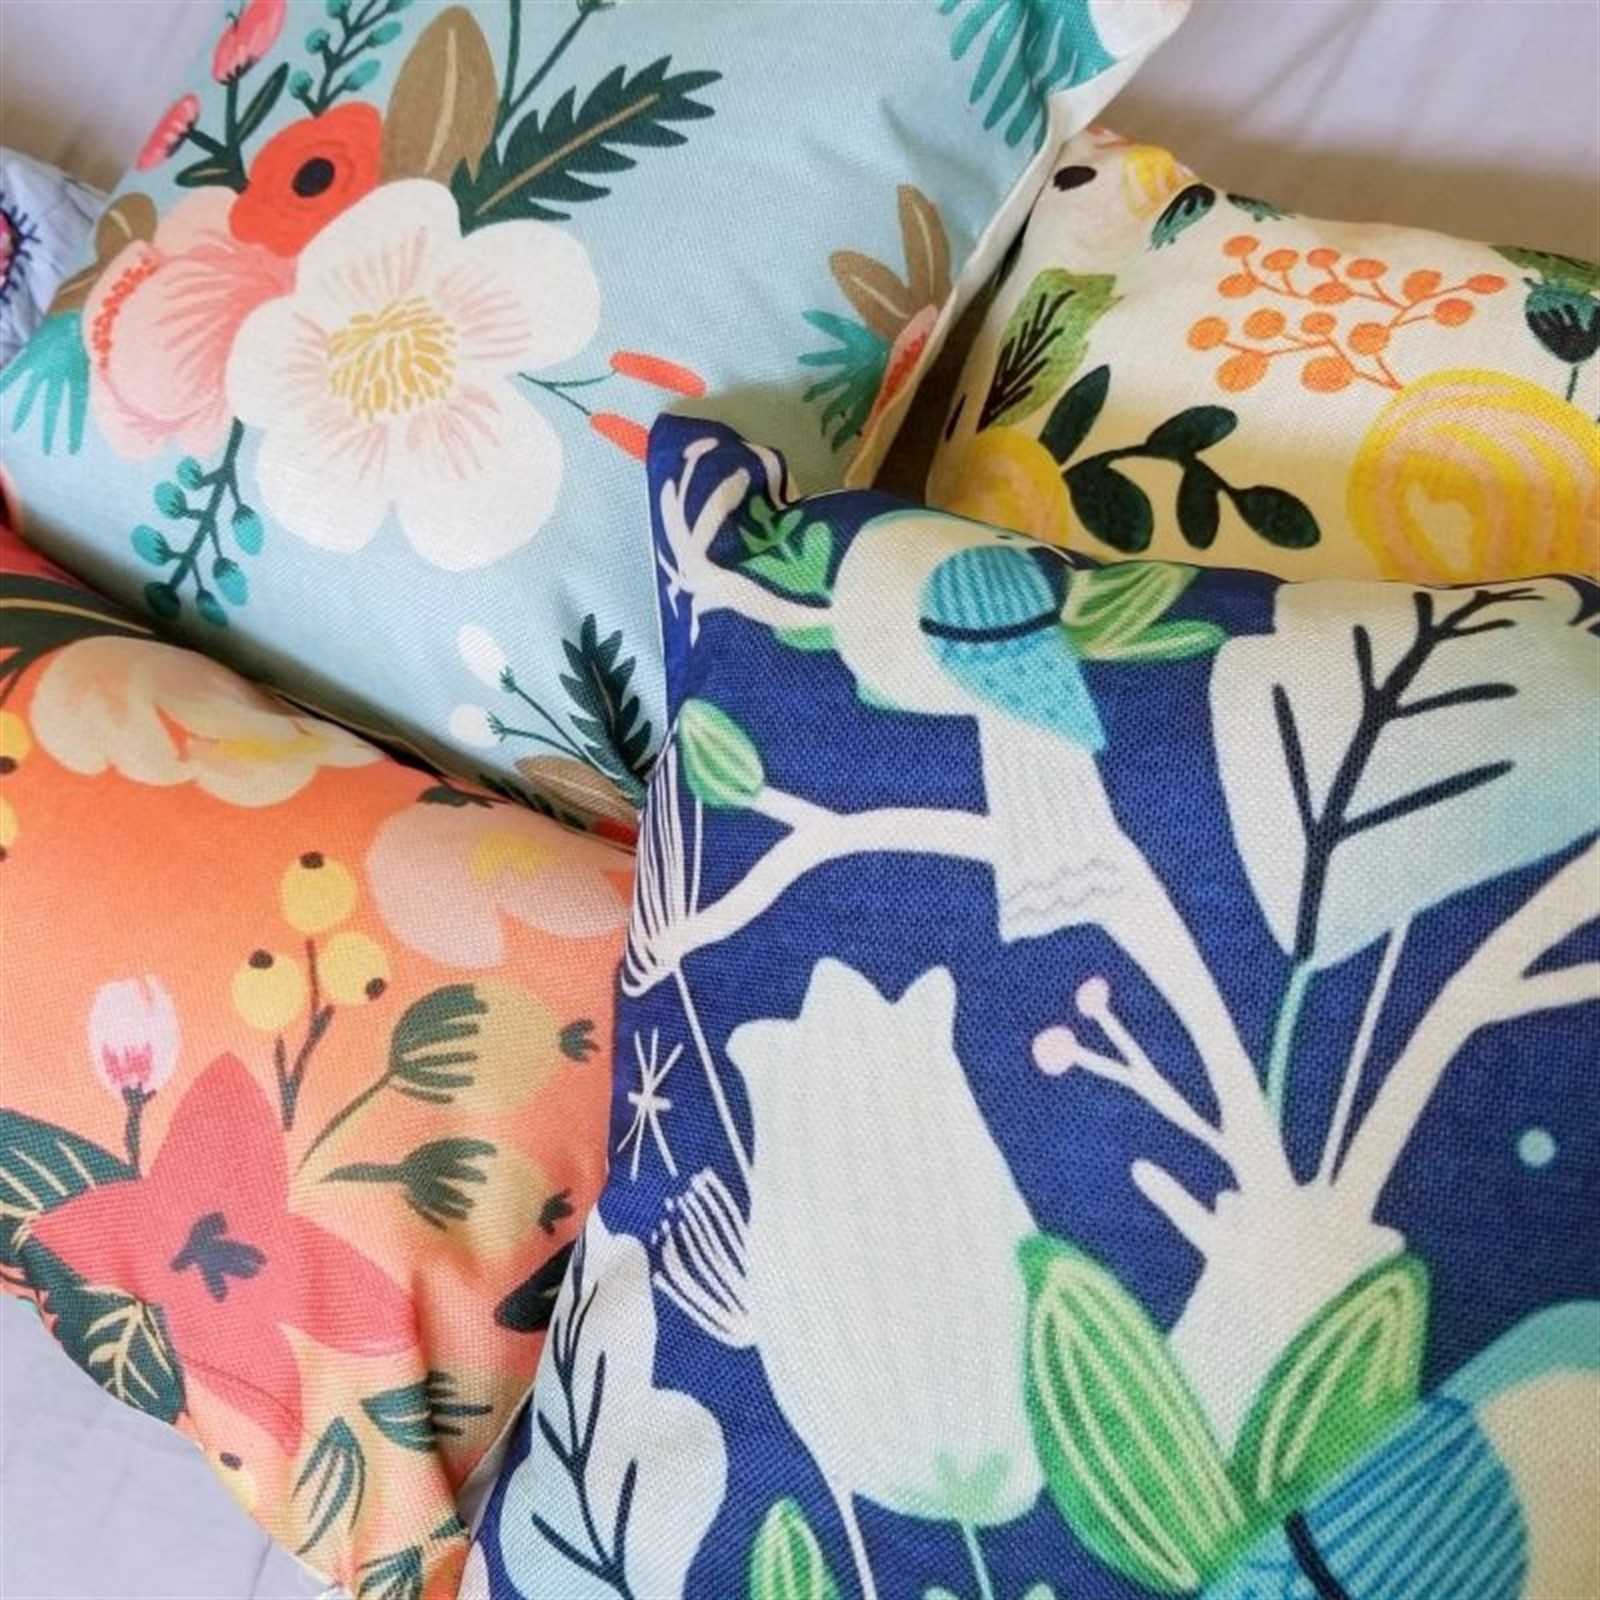 Floral Style Pillow Covers Only $8.99 w/ Free Shipping